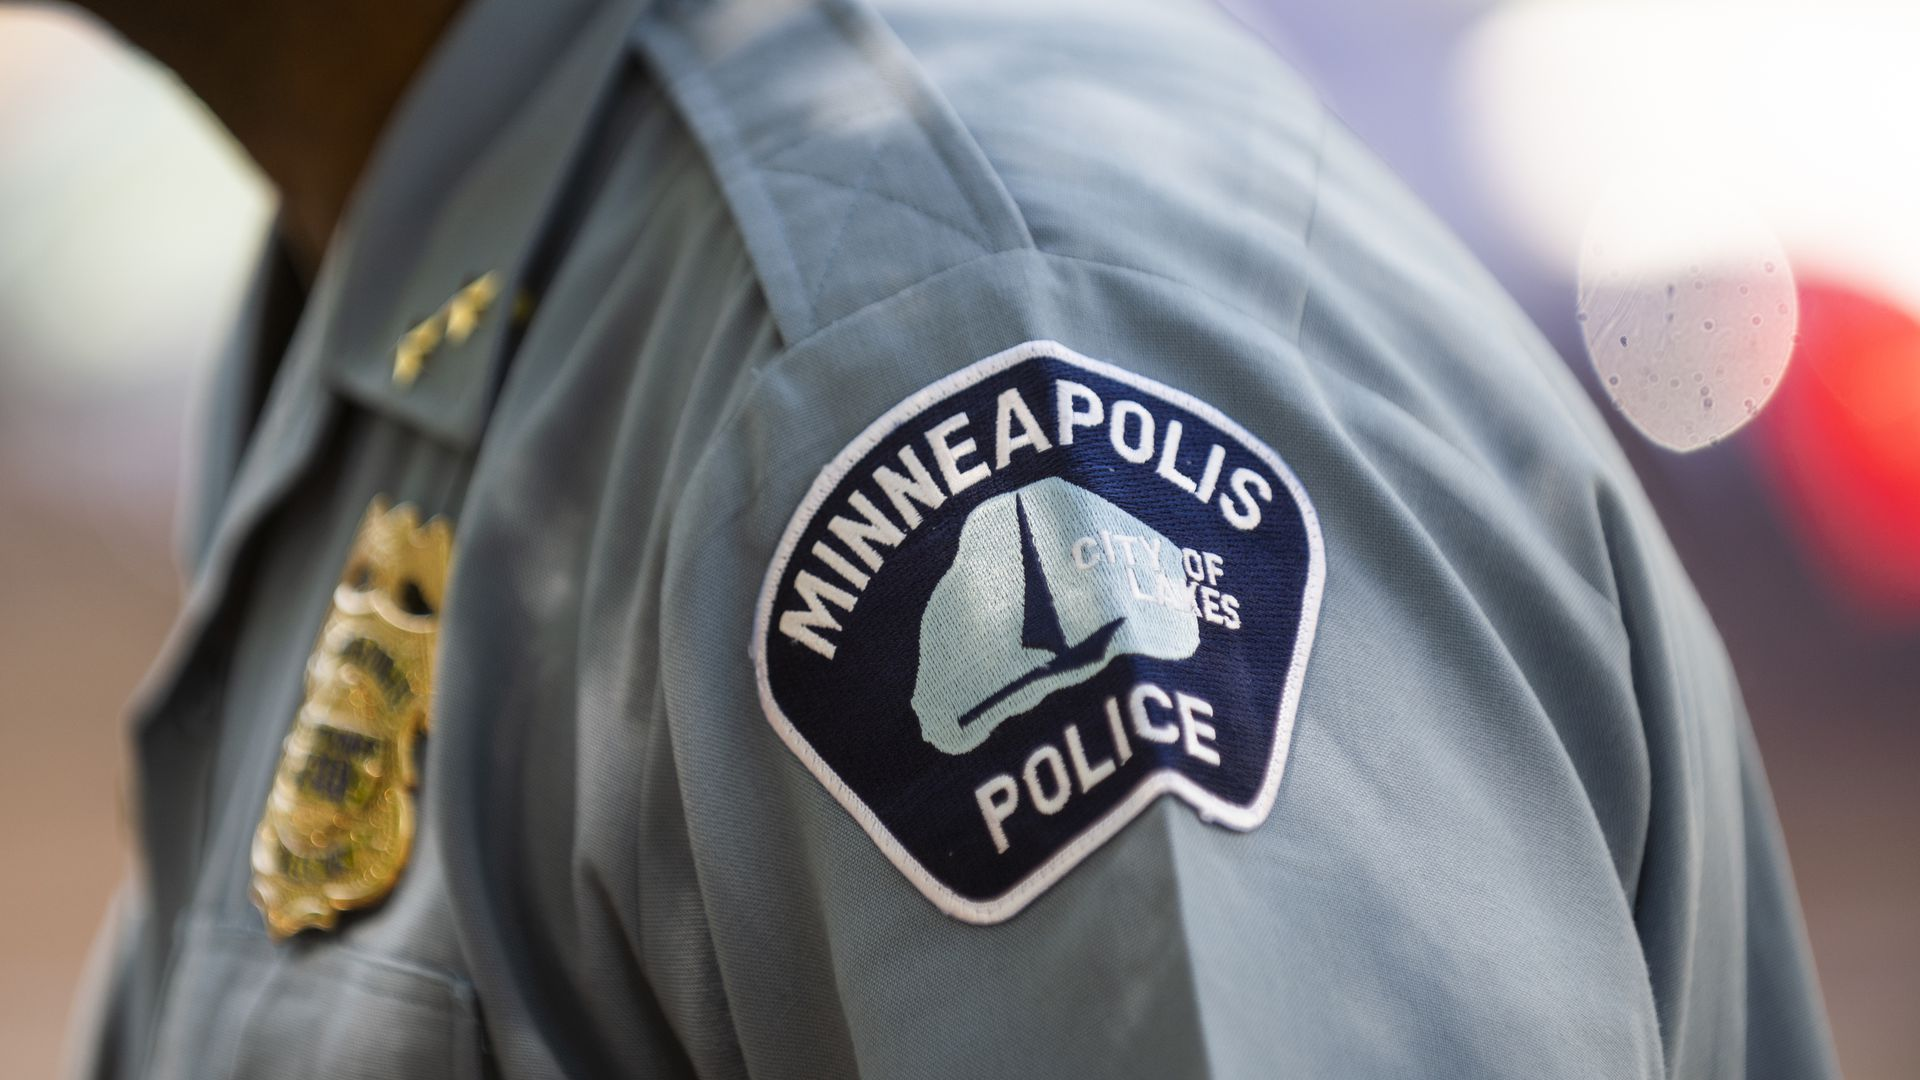 Picture of a police officer's shoulder that shows the Minneapolis police department seal